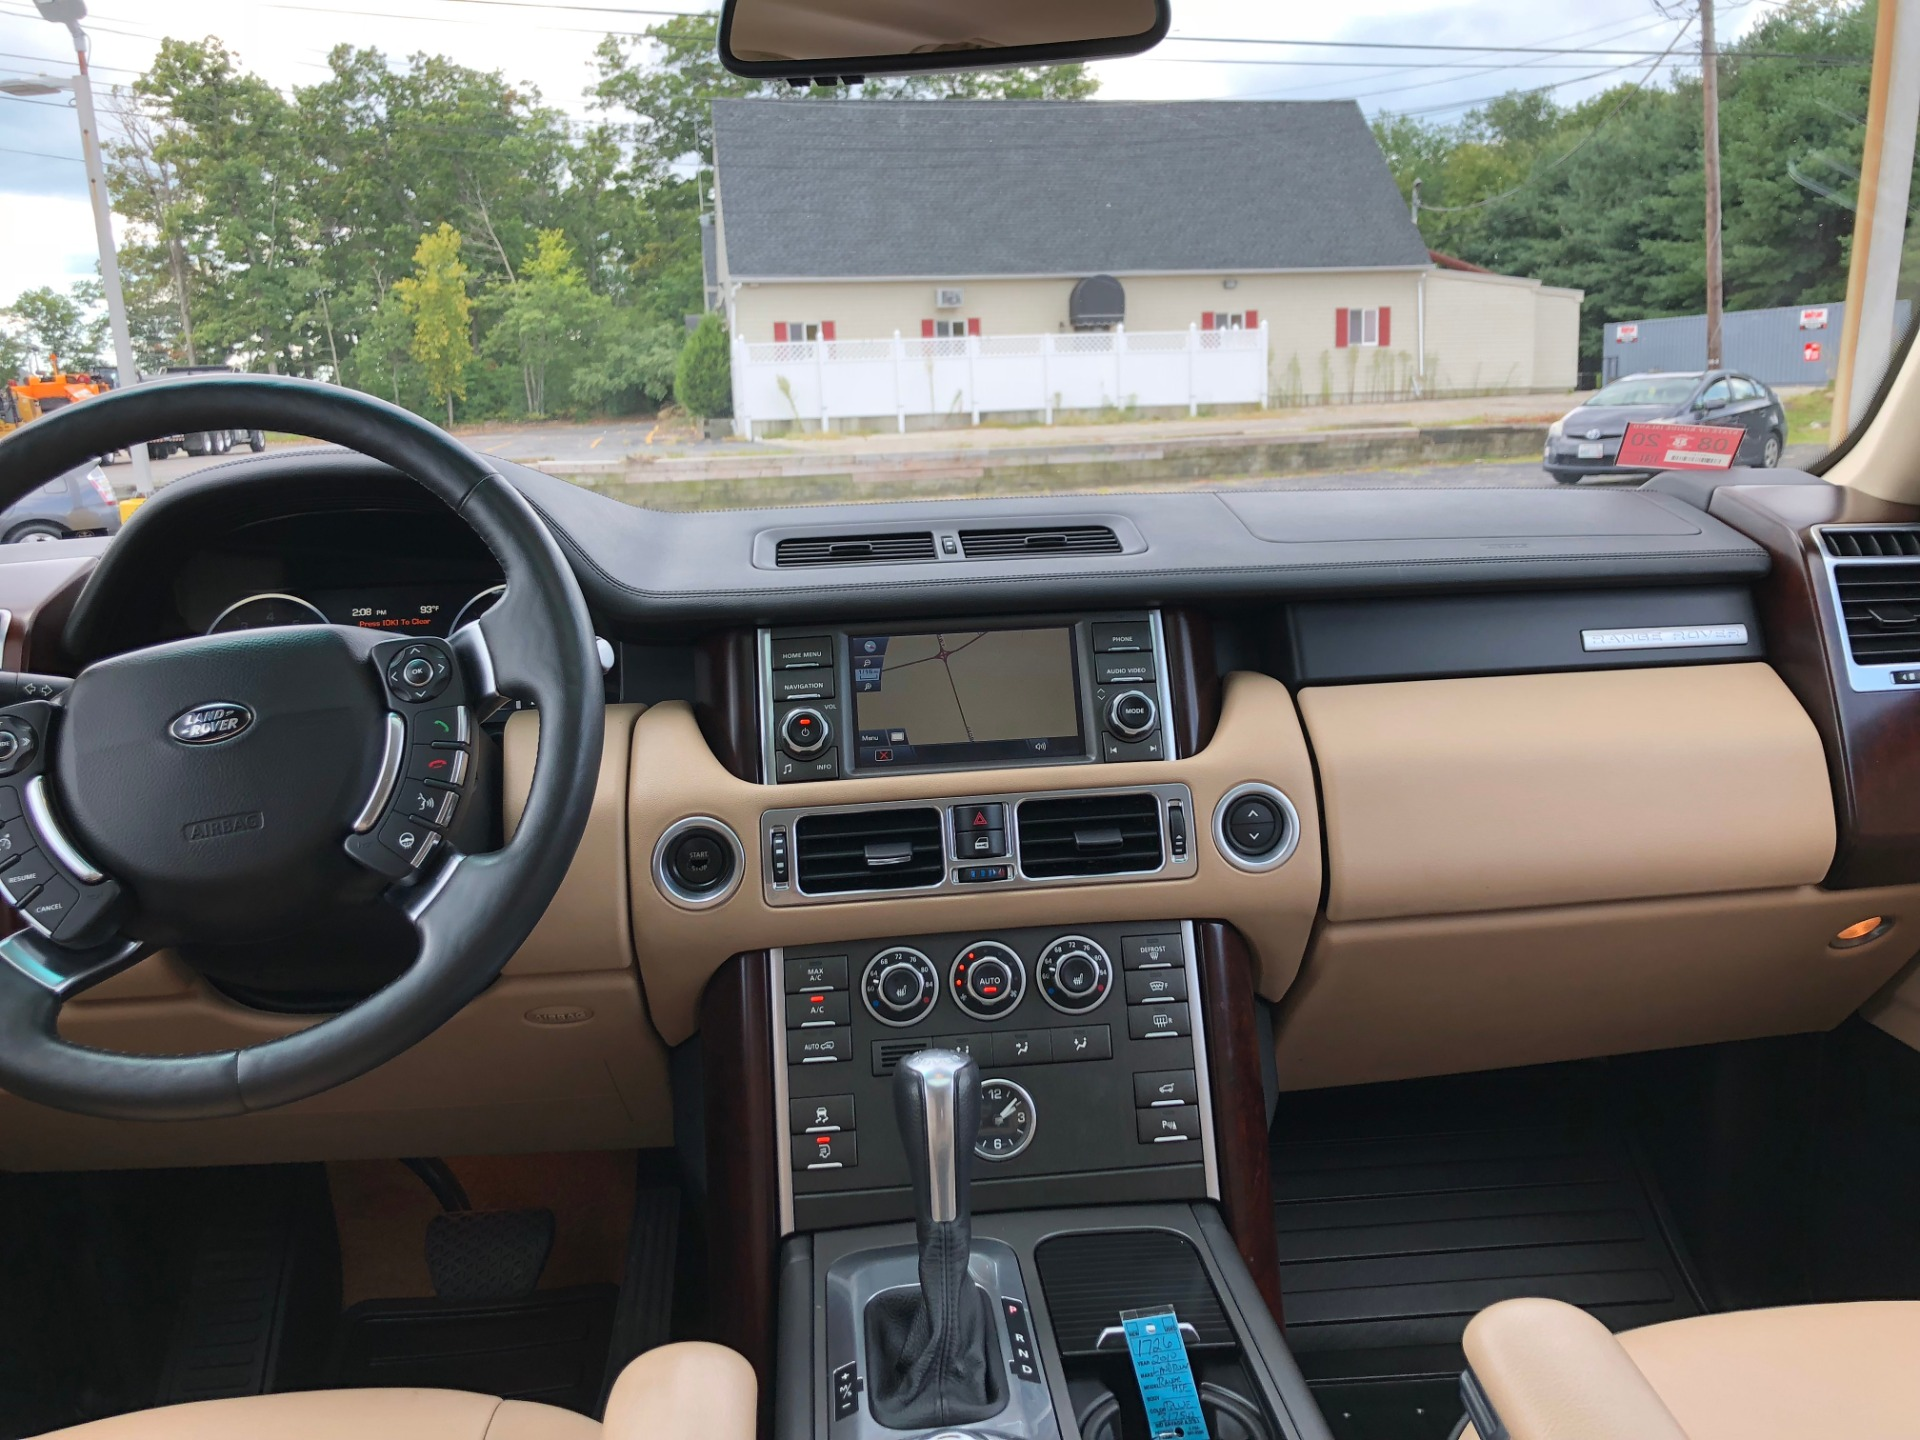 Used 2010 LAND ROVER RANGE ROVER HSE HSE For Sale ($21,850